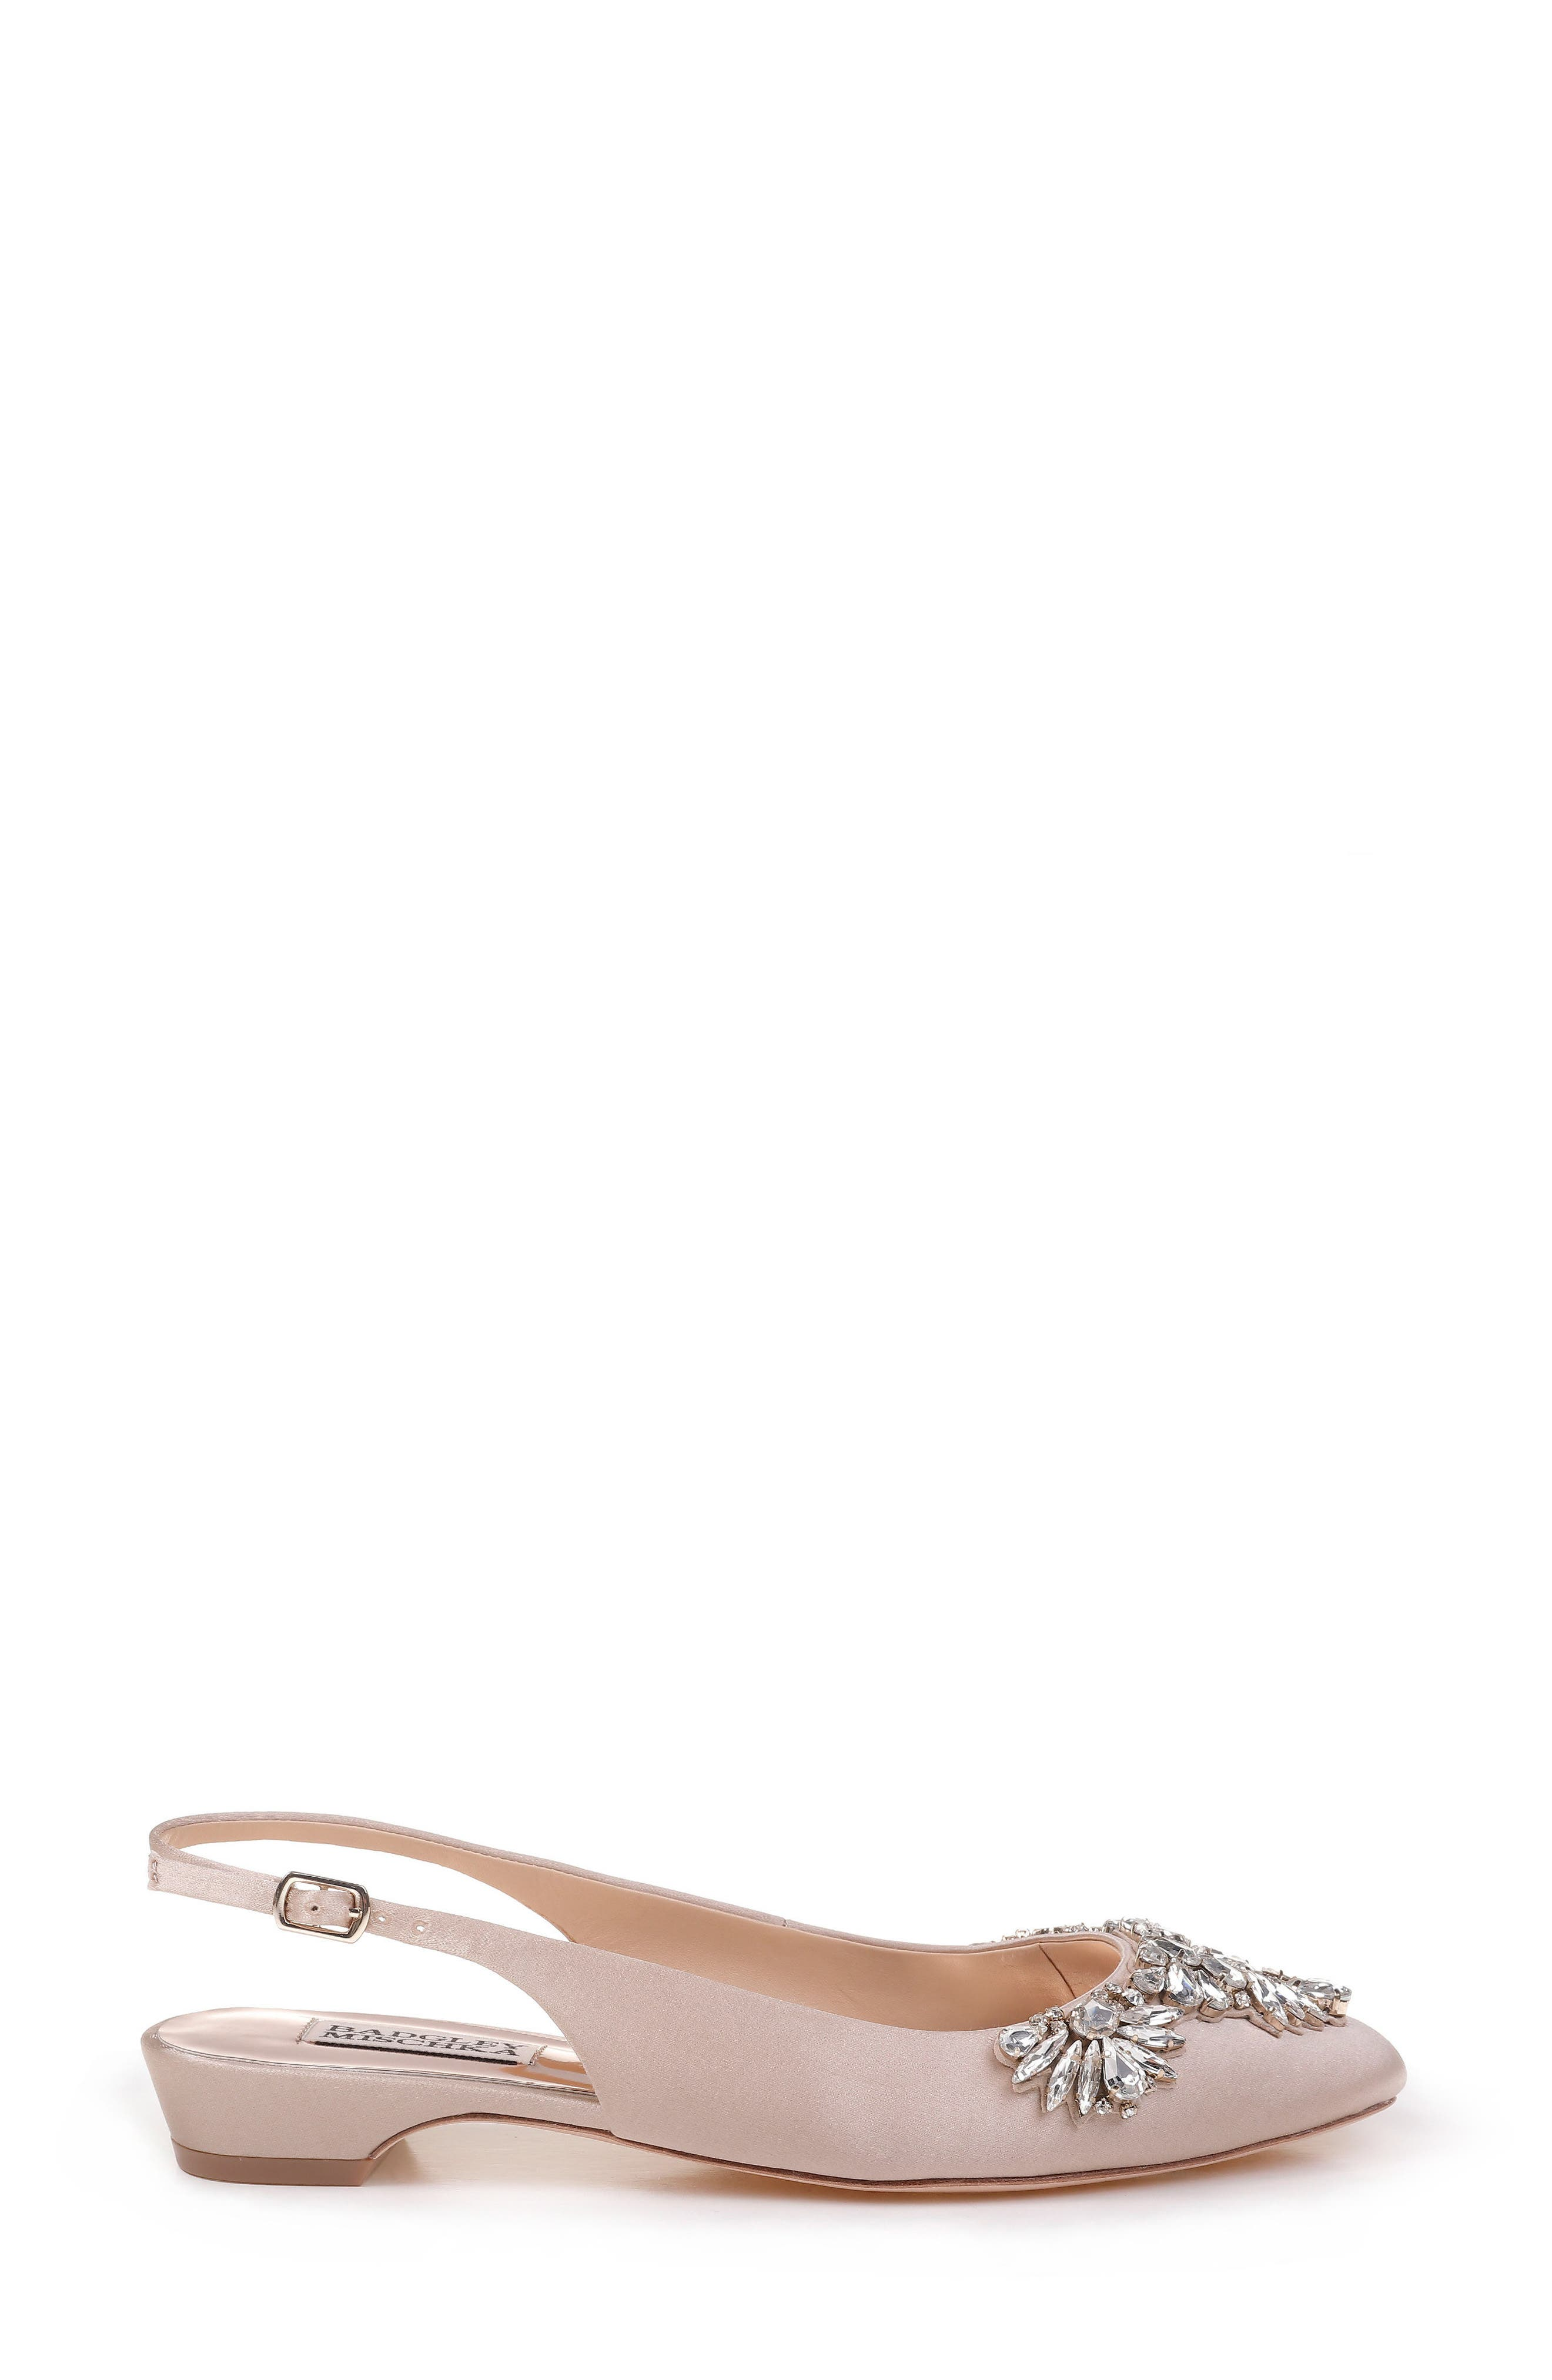 Alternate Image 3  - Badgley Mischka Shayla Slingback Flat (Women)